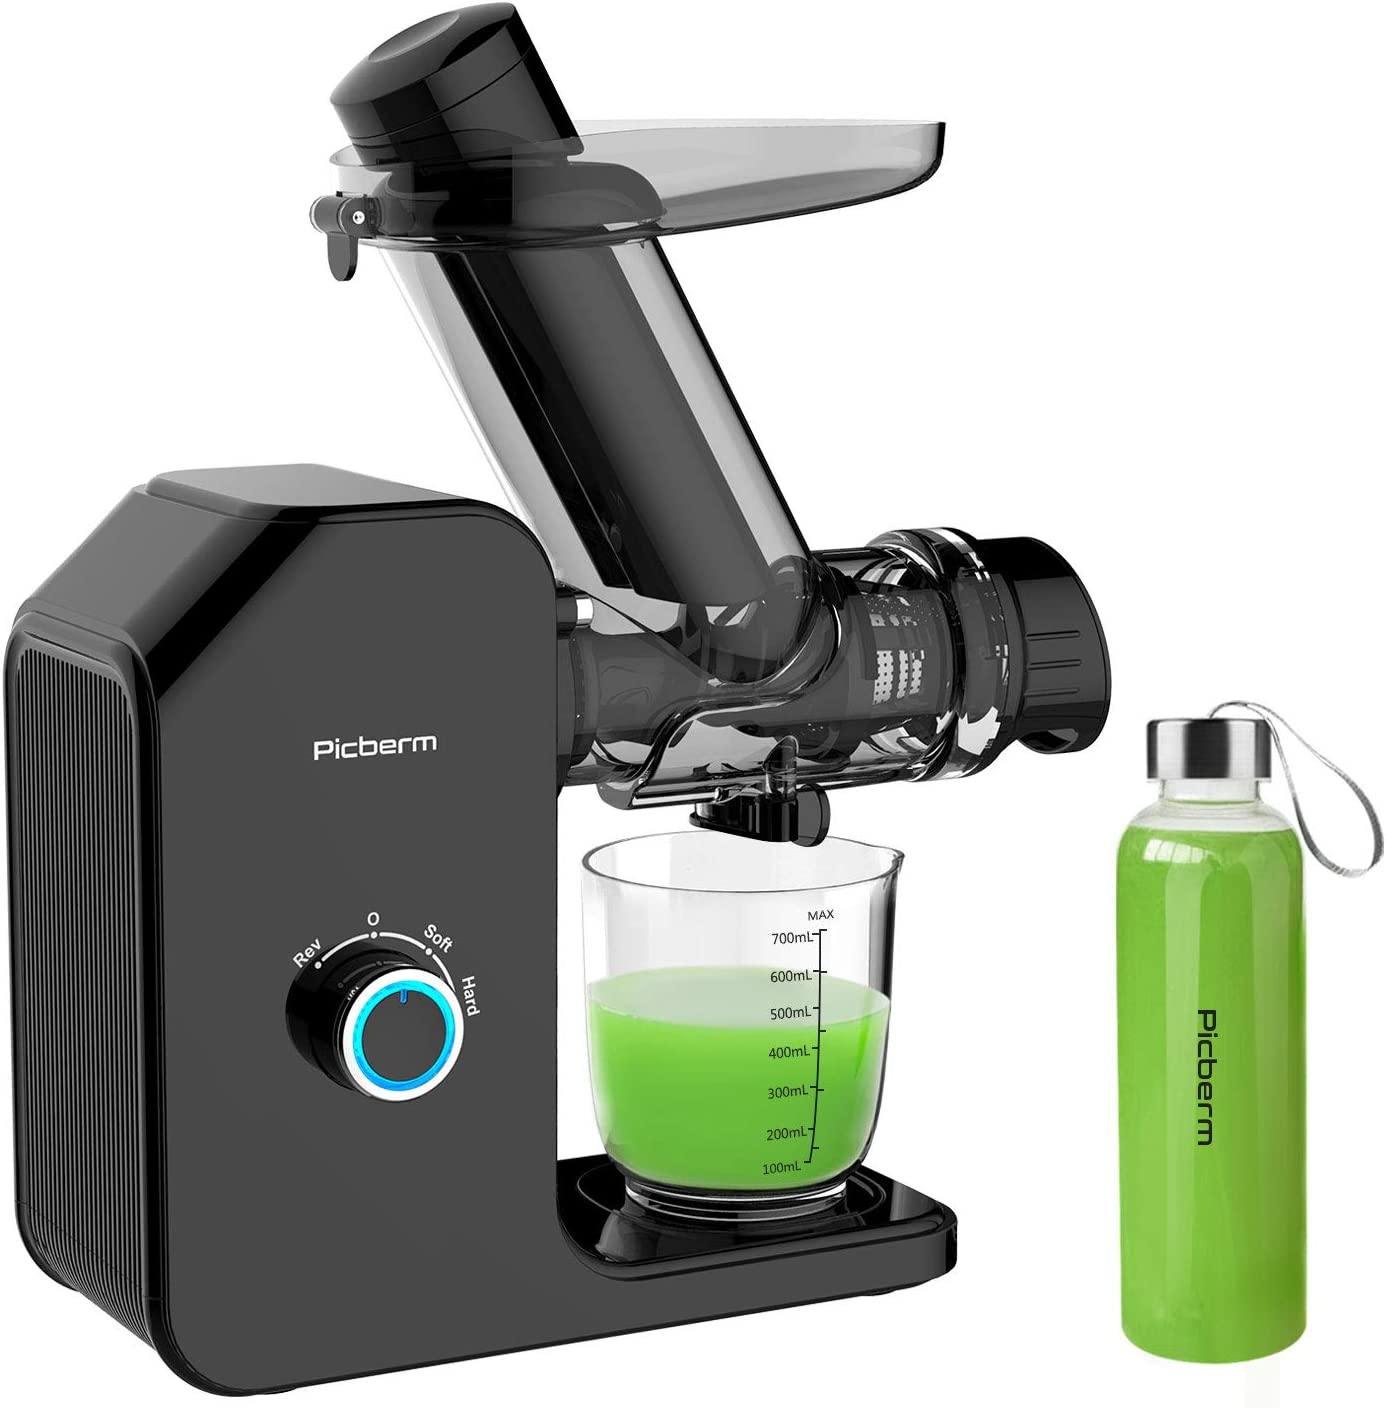 Juicer Machines, Picberm Slow Masticating Juicer Easy to Clean, Wide Chute Cold Press Juicer Extractor for Vegetable and Fruit, BPA-Free Anti-drip Juicers with Brush & Quiet Motor - Black with Bottle